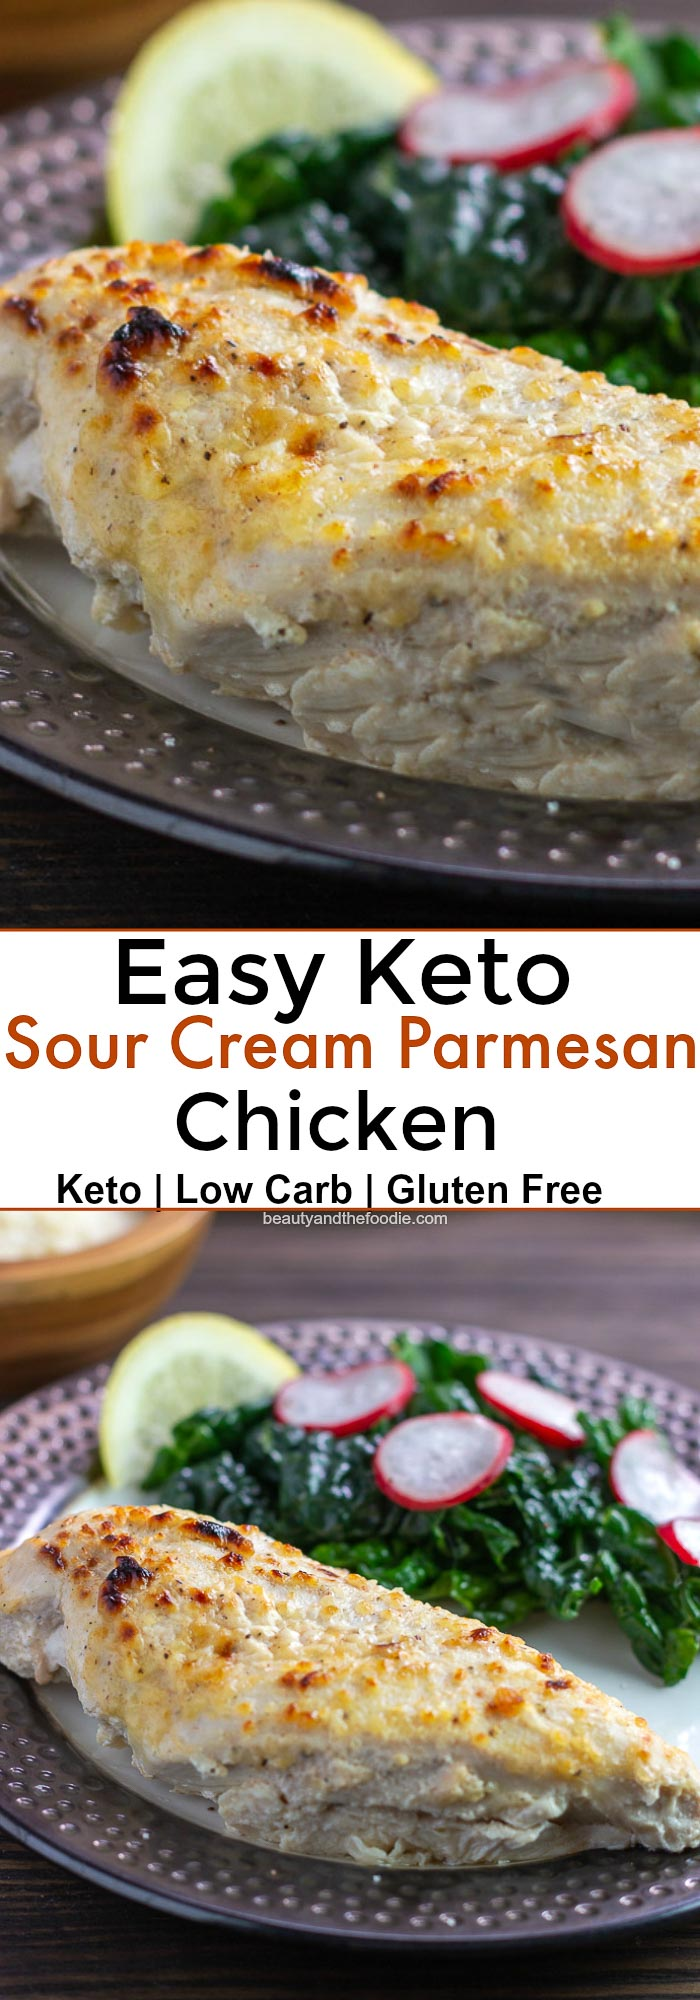 Easy Keto Sour Cream Parmesan Chicken